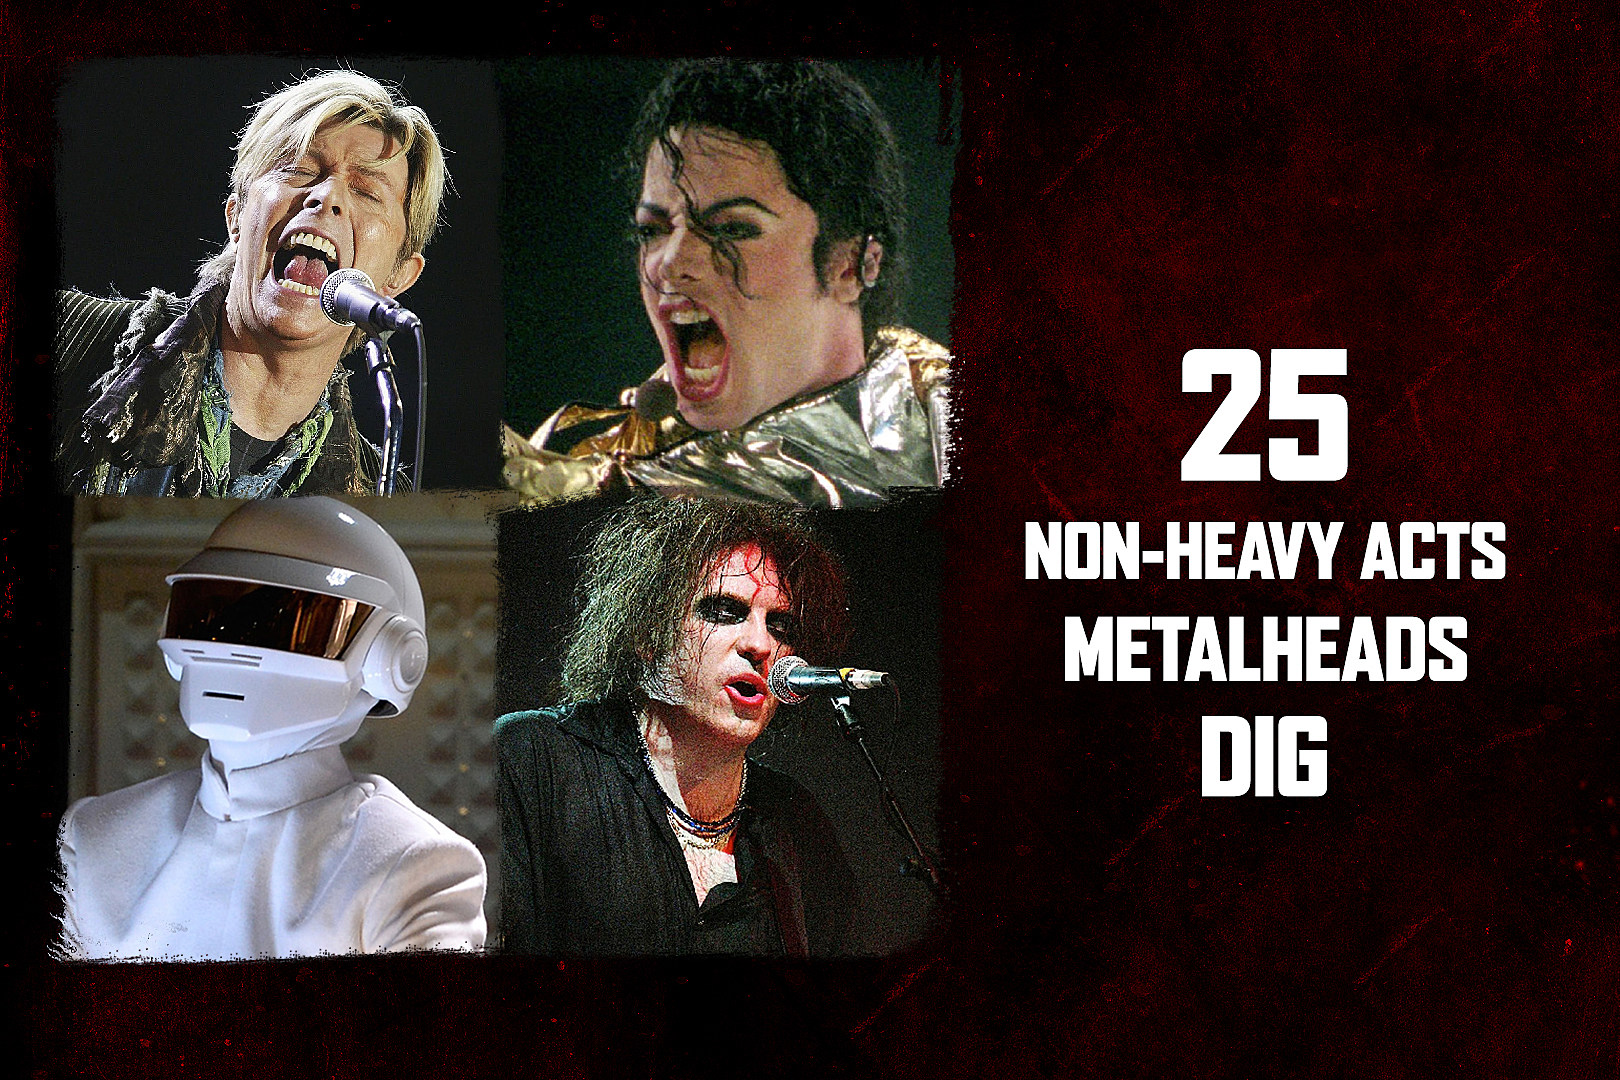 25 Non-Heavy Acts Metalheads Dig